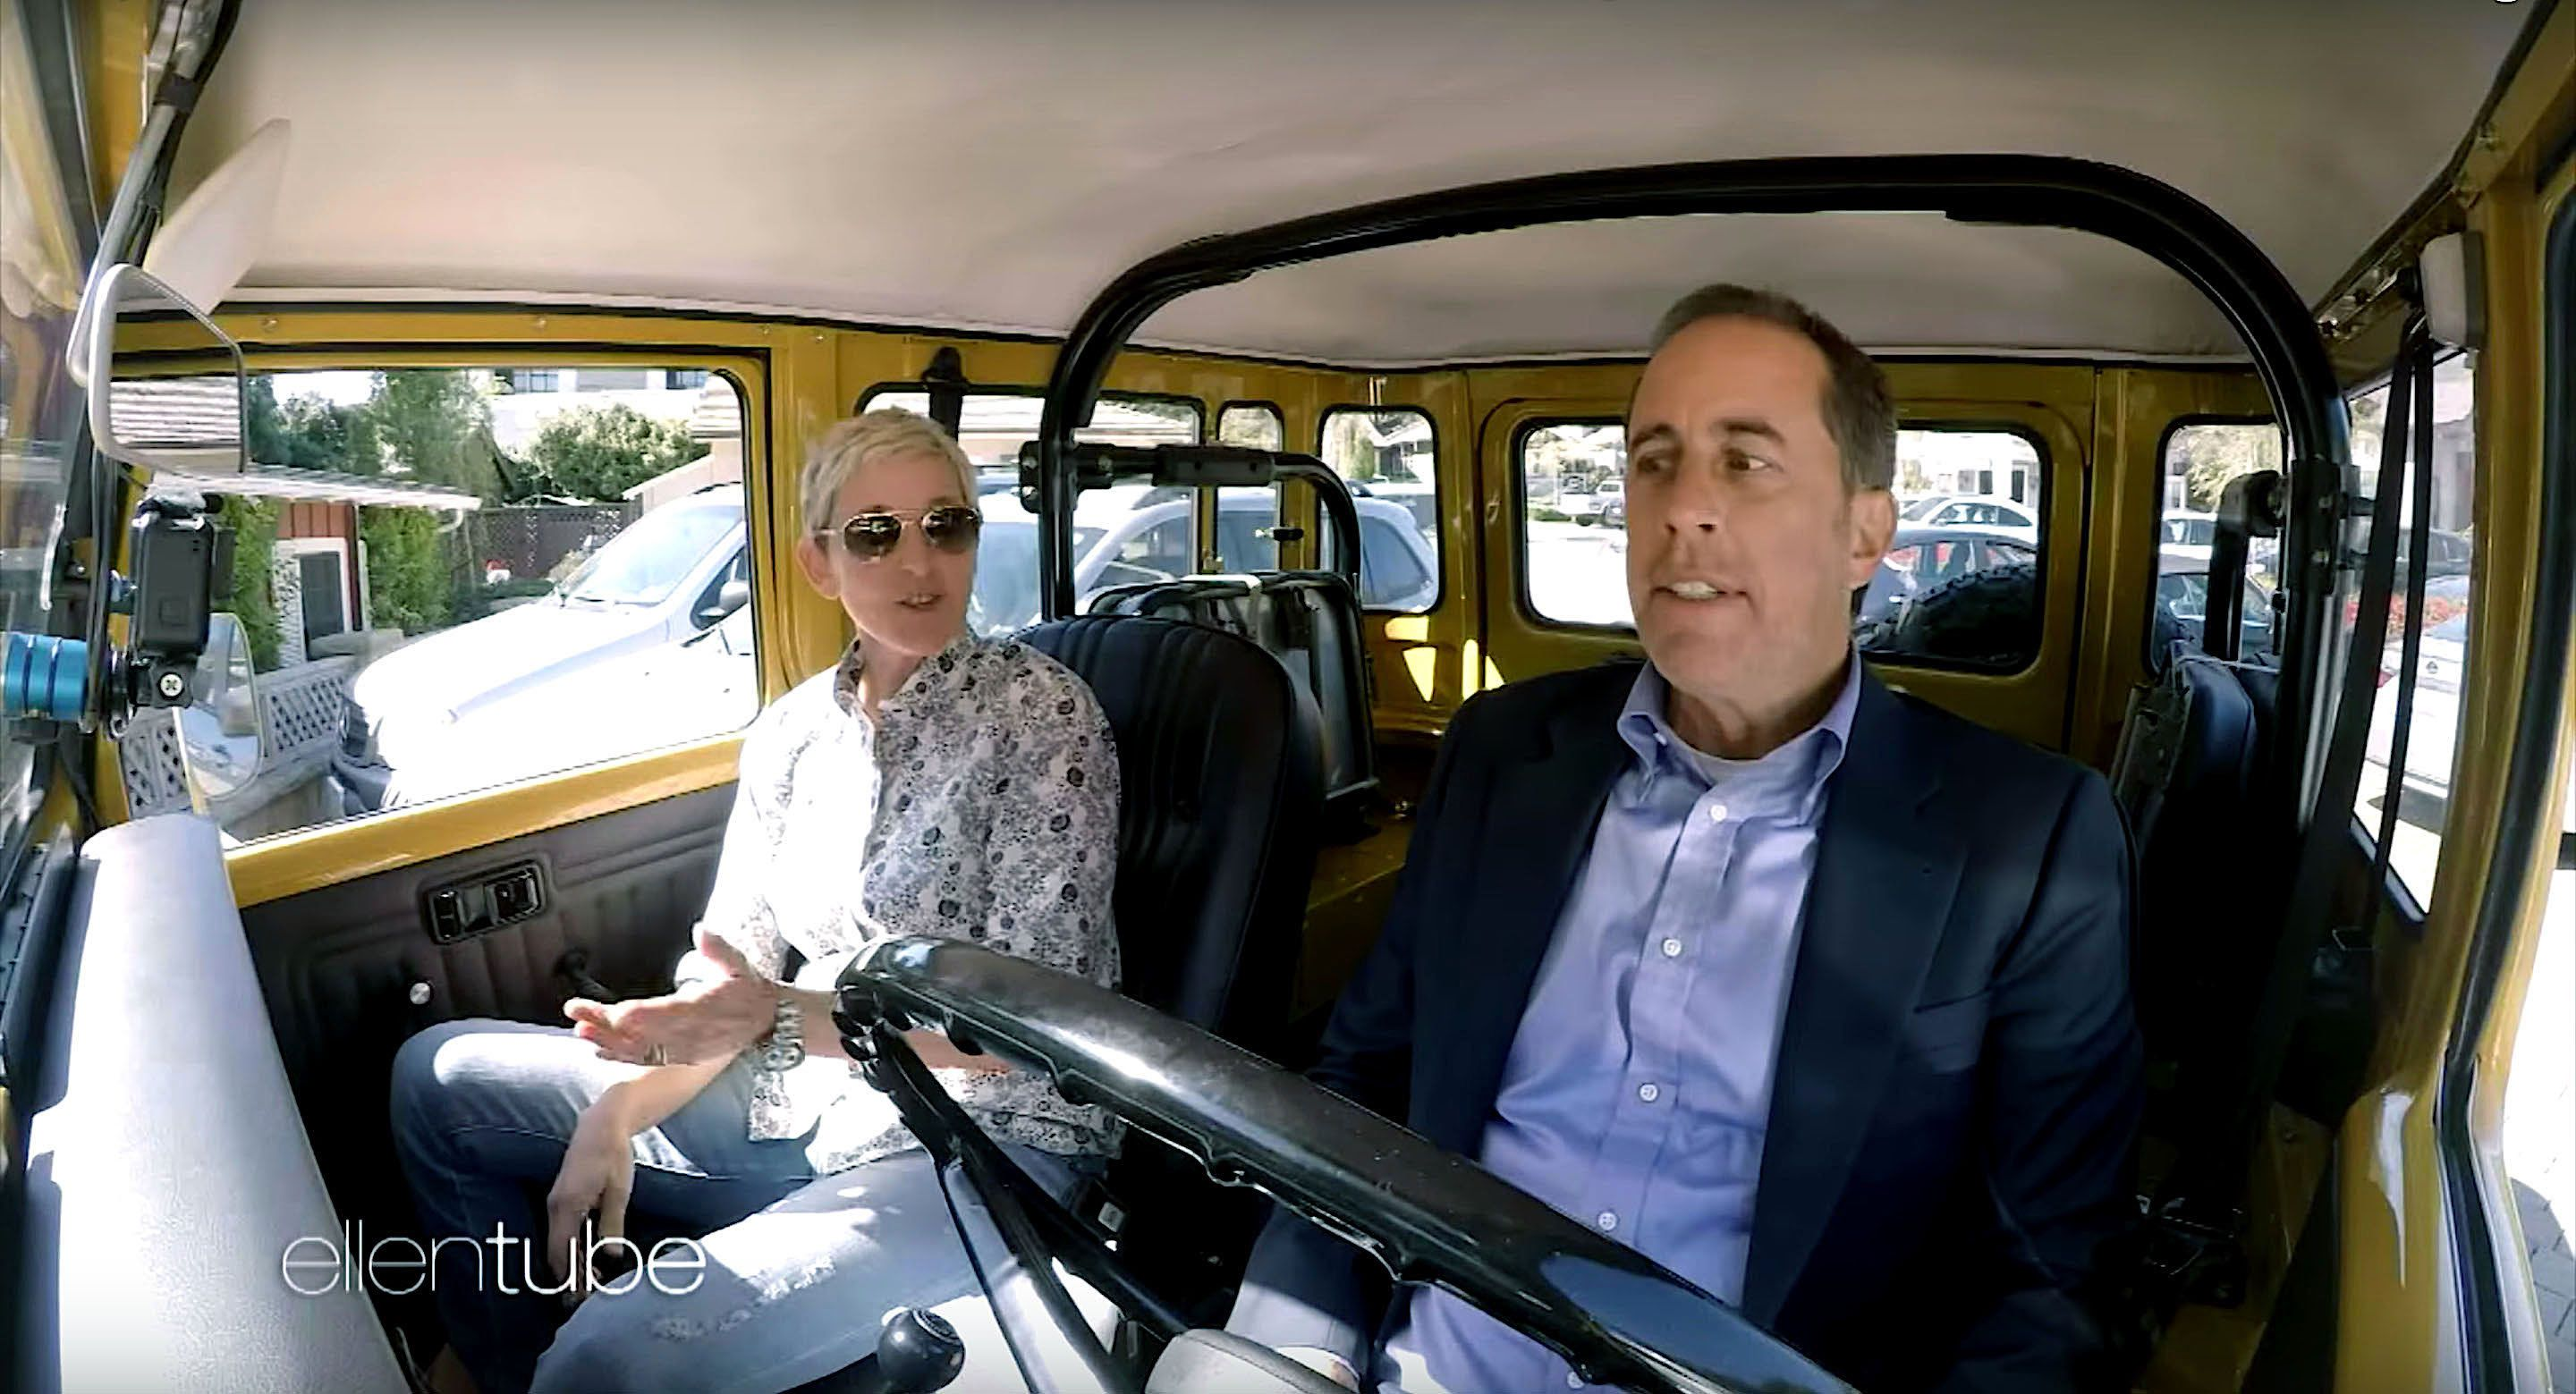 Ellen DeGeneres and Jerry Seinfeld in an episode of Comedians in Cars Getting Coffee